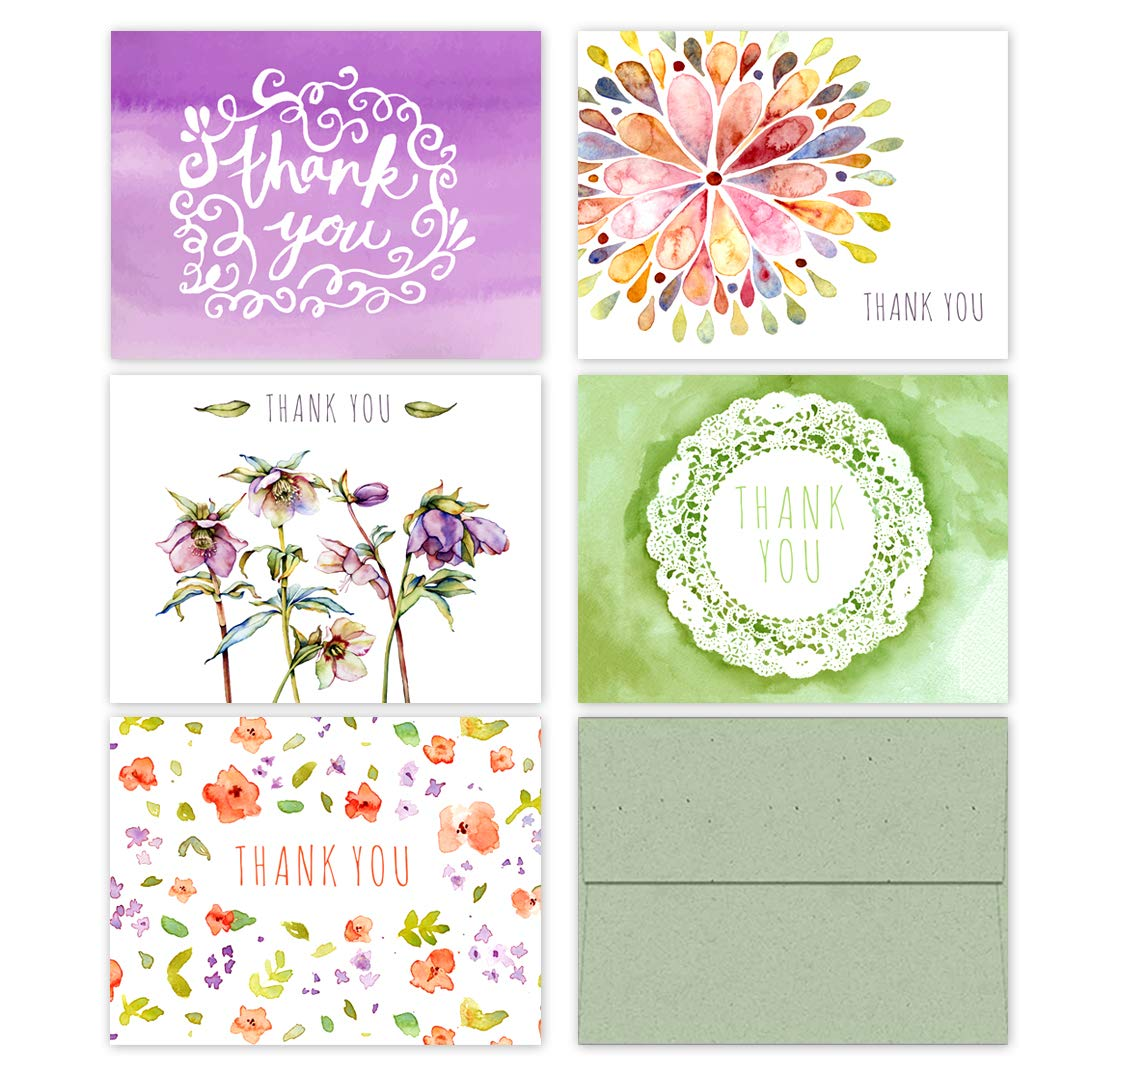 10 Premium Thank You Cards with Sage Green Envelopes Assorted All-Occasion Note Card Bulk Set - 5 Unique Designs Floral Watercolor Thank You Cards Made in The USA by Palmer Street Press